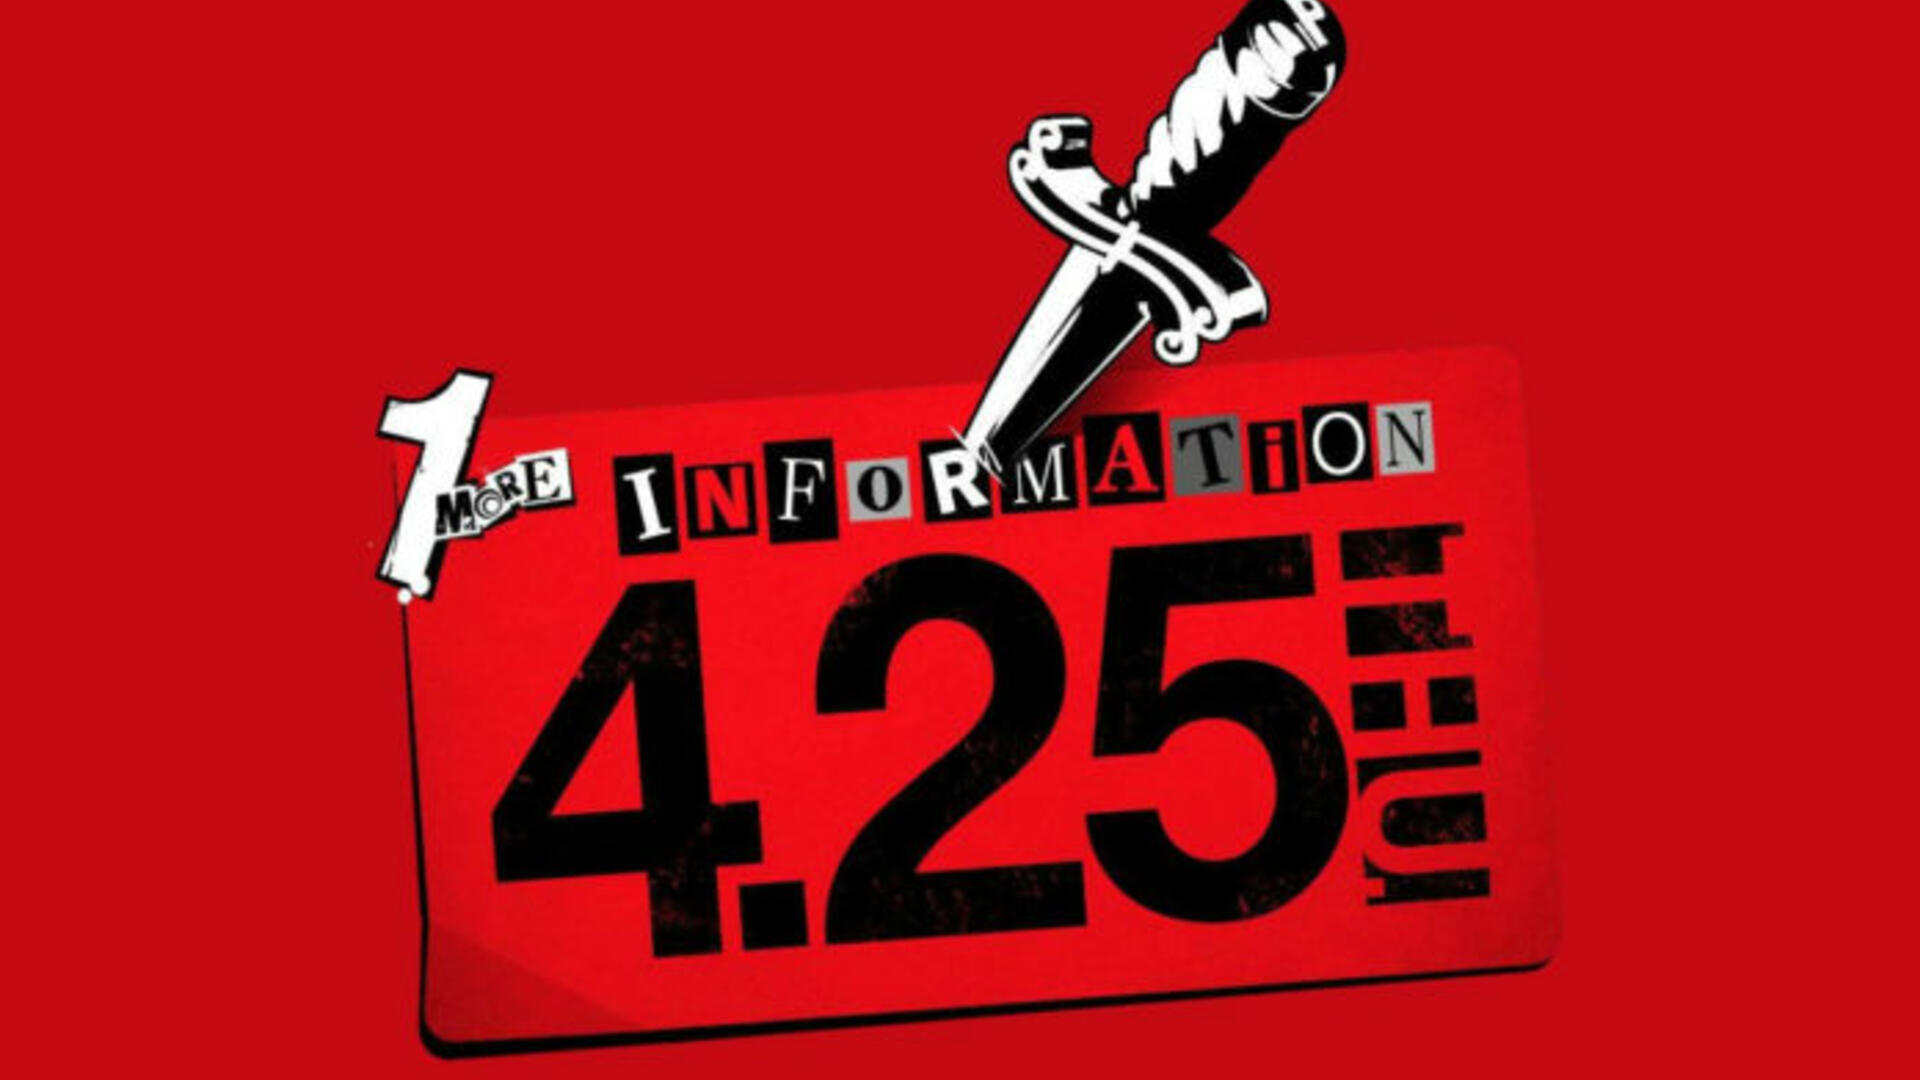 Persona 5 'P5S' Announcement Teased for April 25